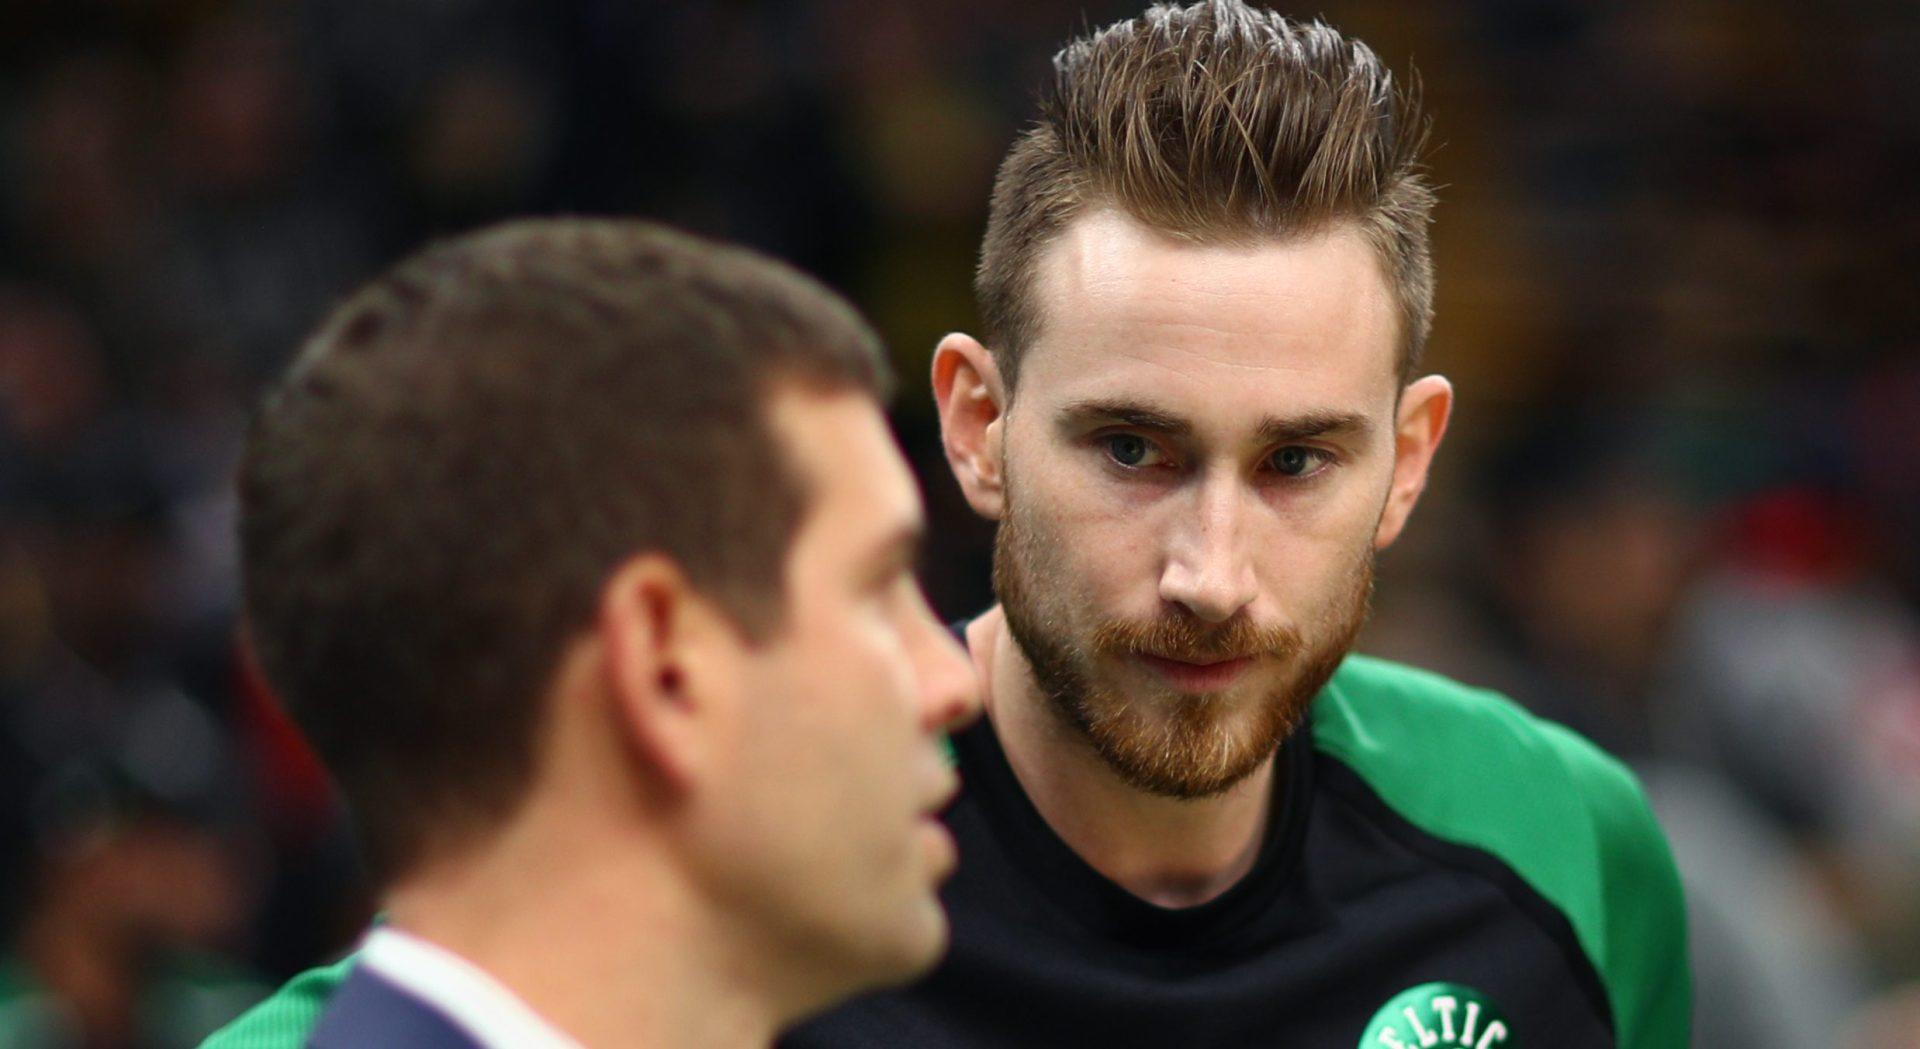 Report: Brad Stevens' dedication to Gordon Hayward caused chemistry issues with Celtics